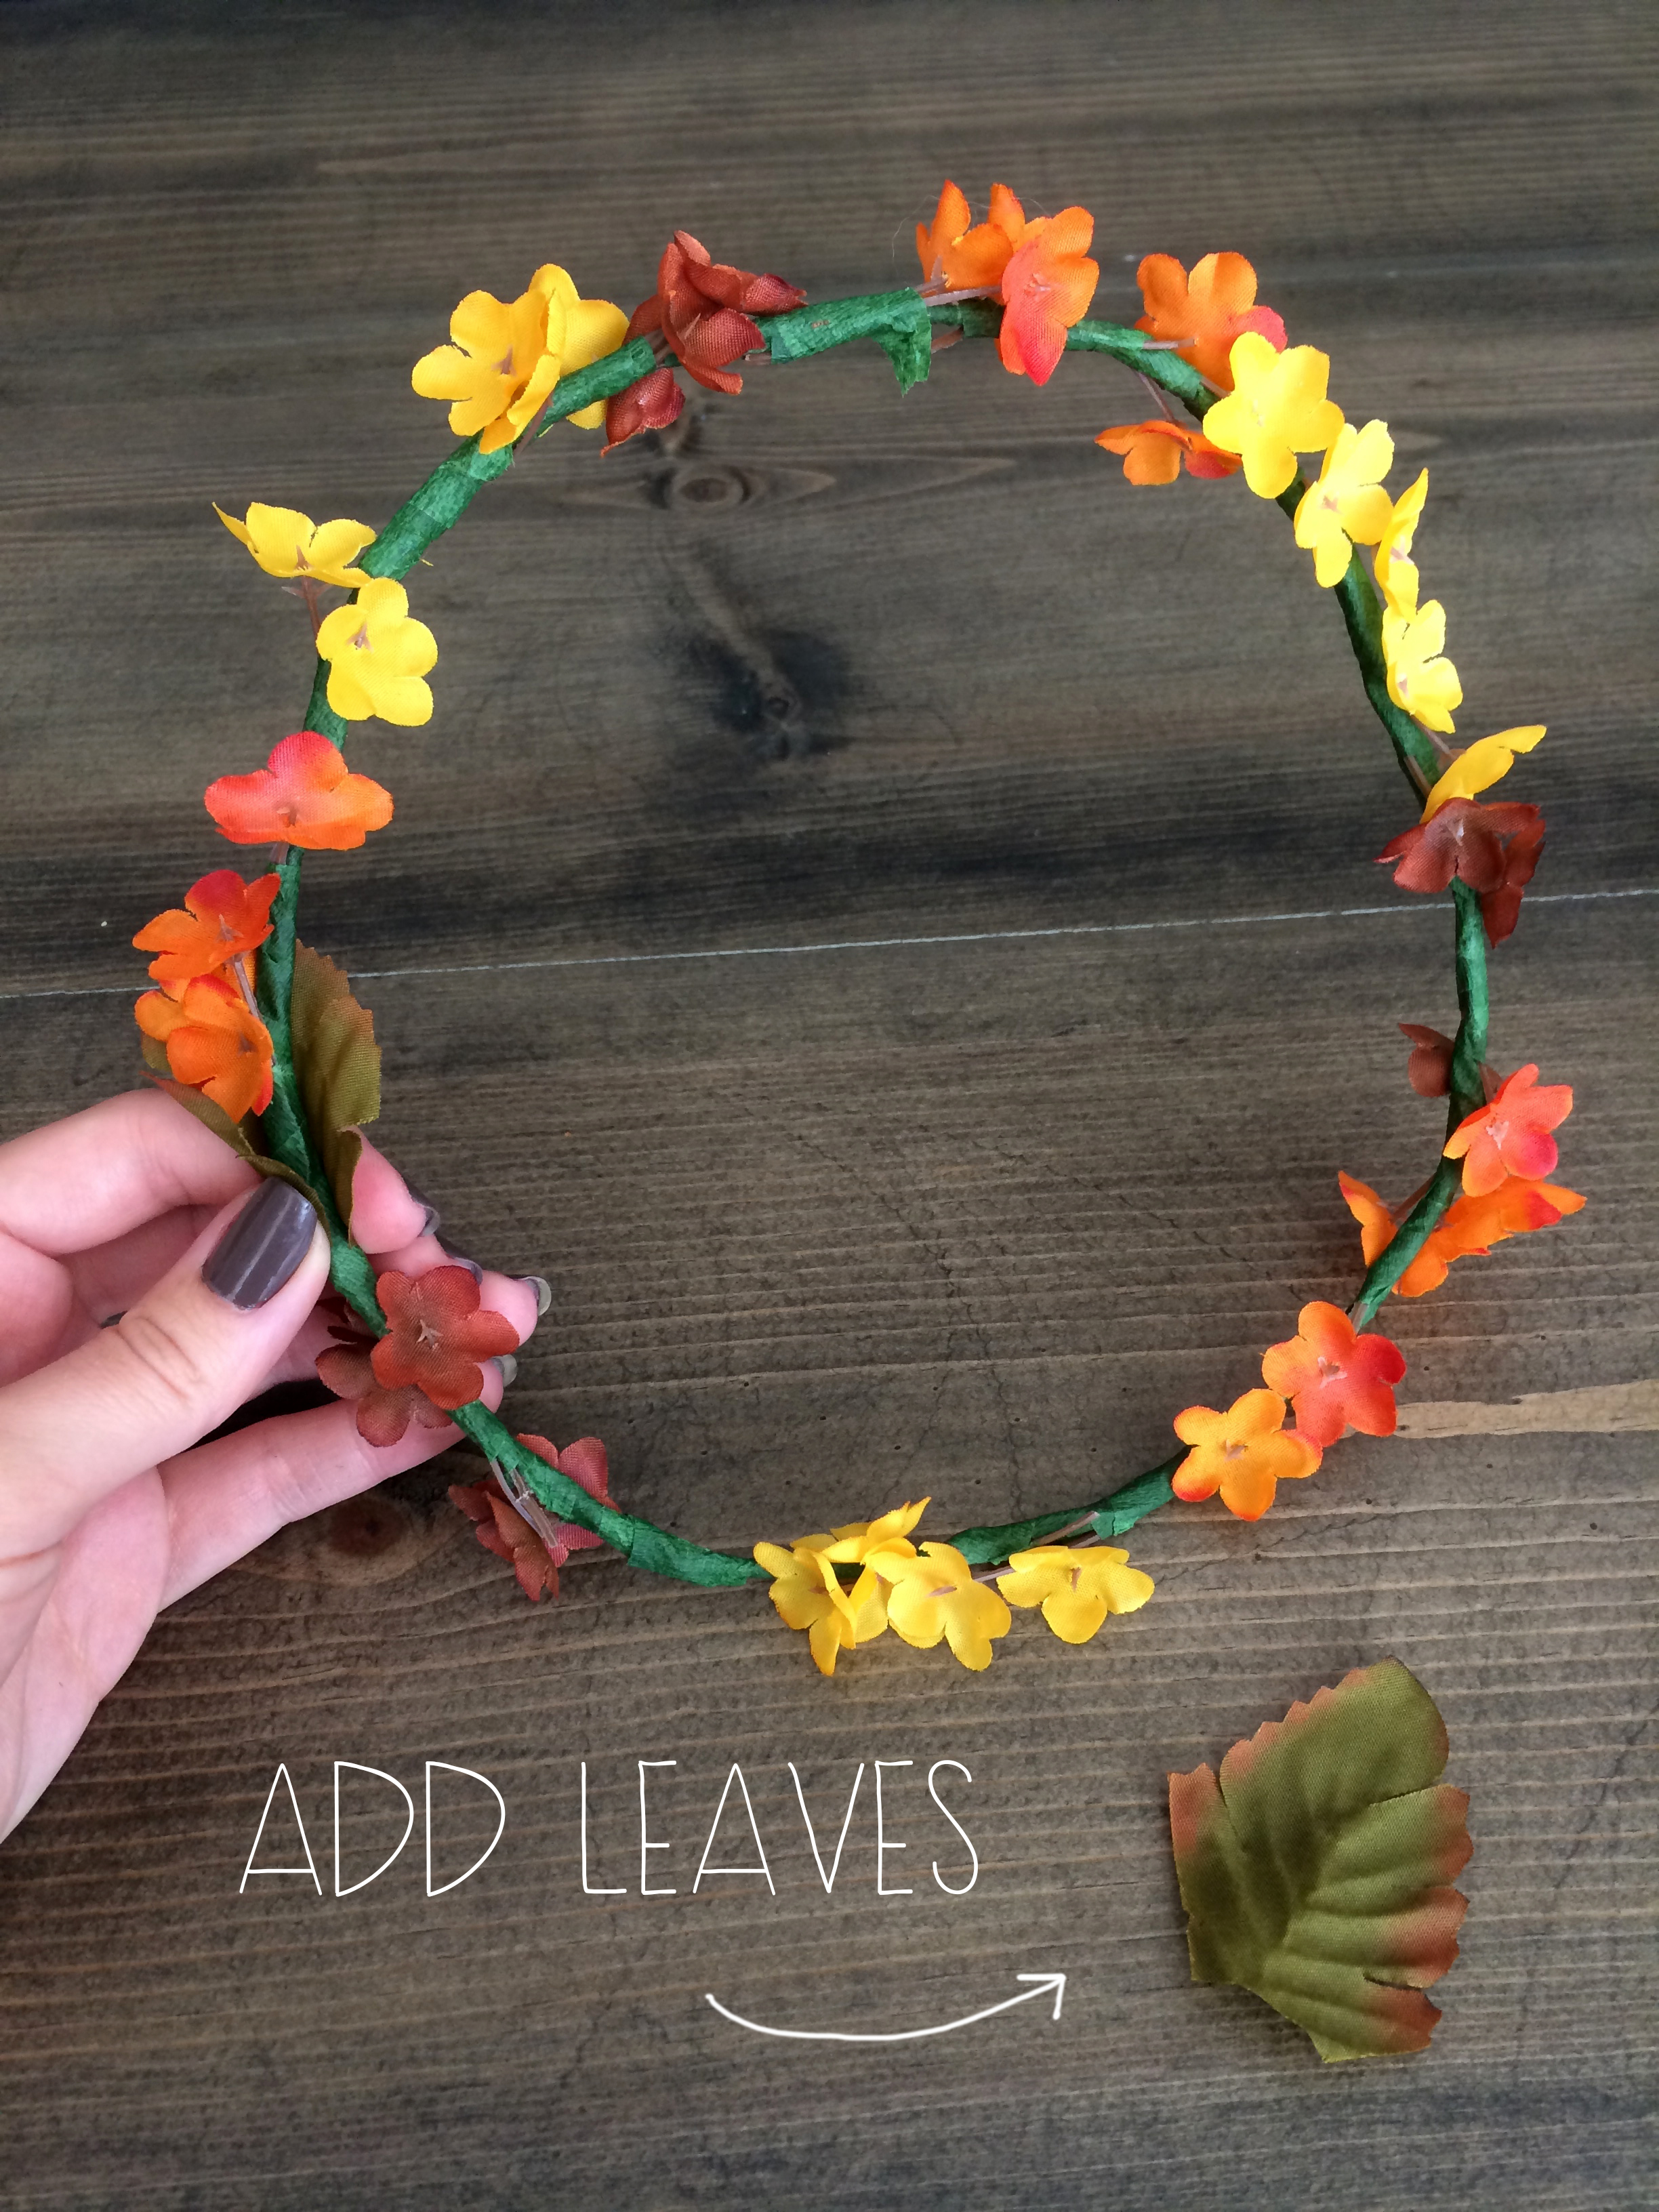 Add Leaves - Autumn Flower Crown | Red Autumn Co